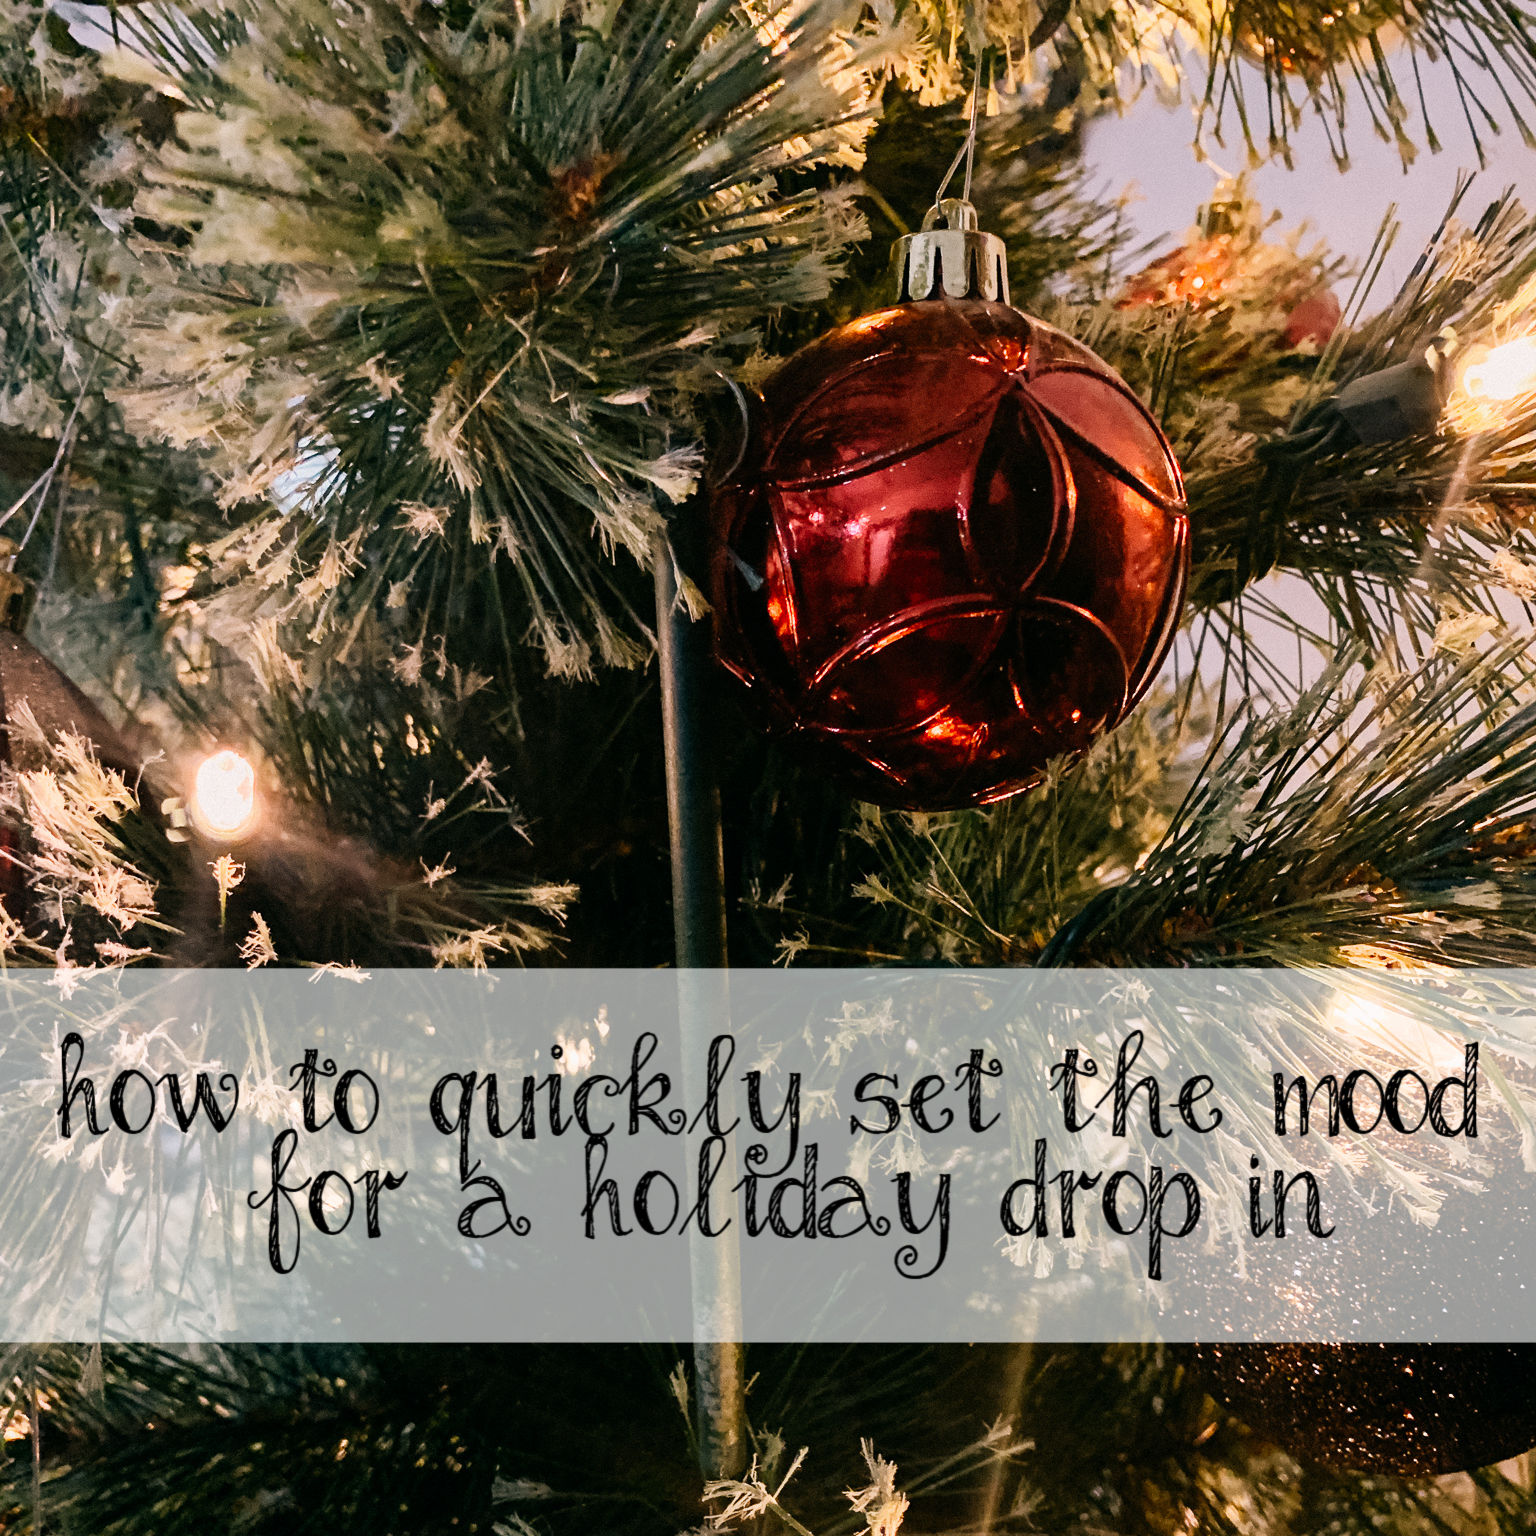 How to Quickly Set the Mood for a Holiday Drop In